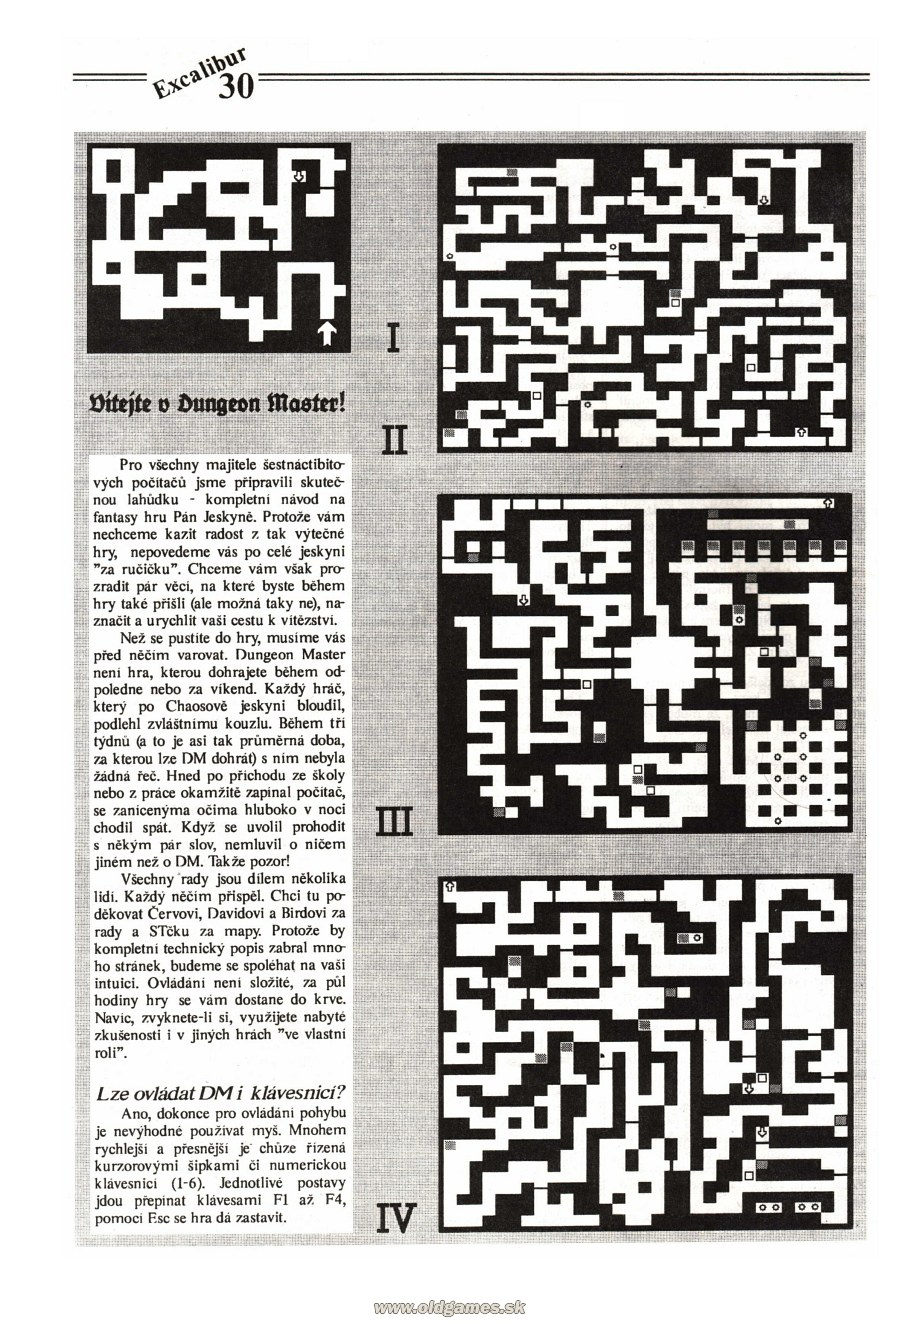 Dungeon Master Guide published in Czech magazine 'Excalibur', Issue #4 July 1991, Page 30